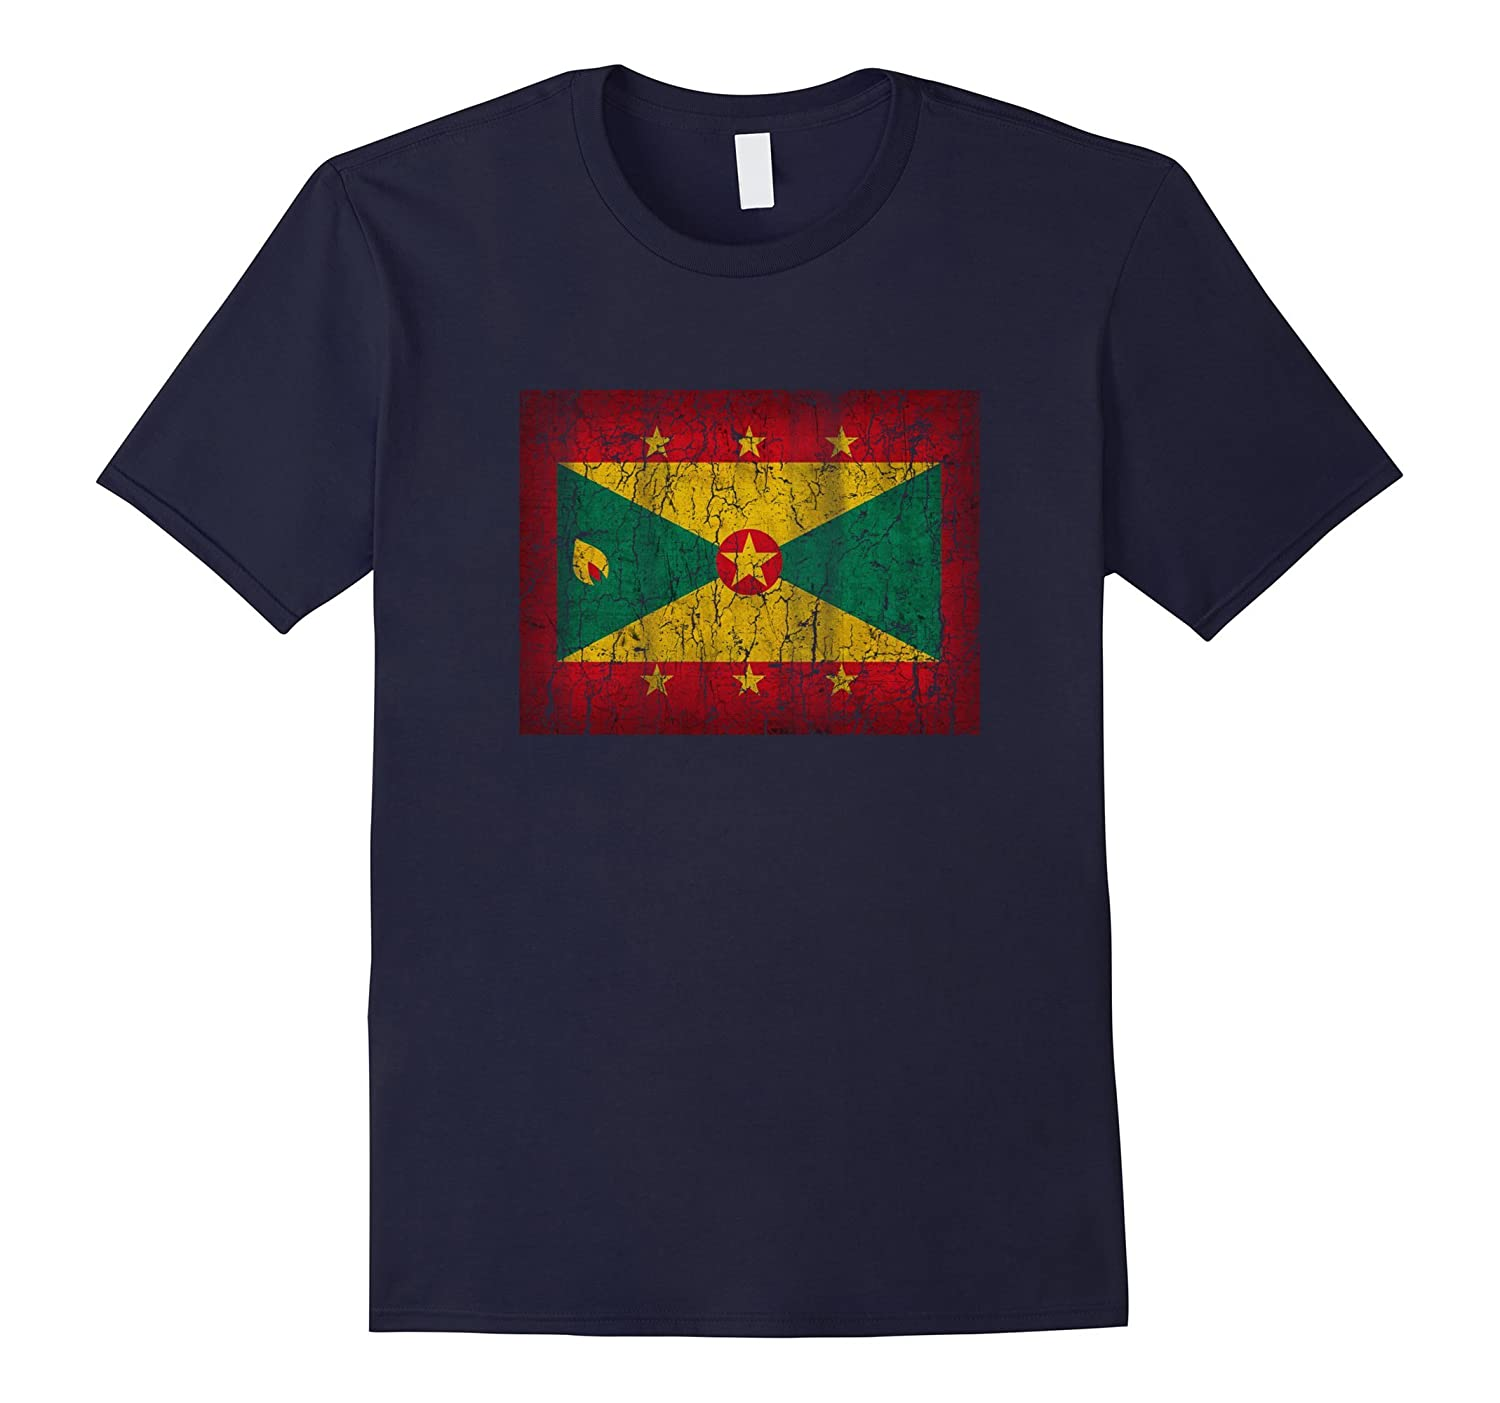 Patriotic Retro Flag of Grenada T-Shirt Distressed Graphic-Vaci